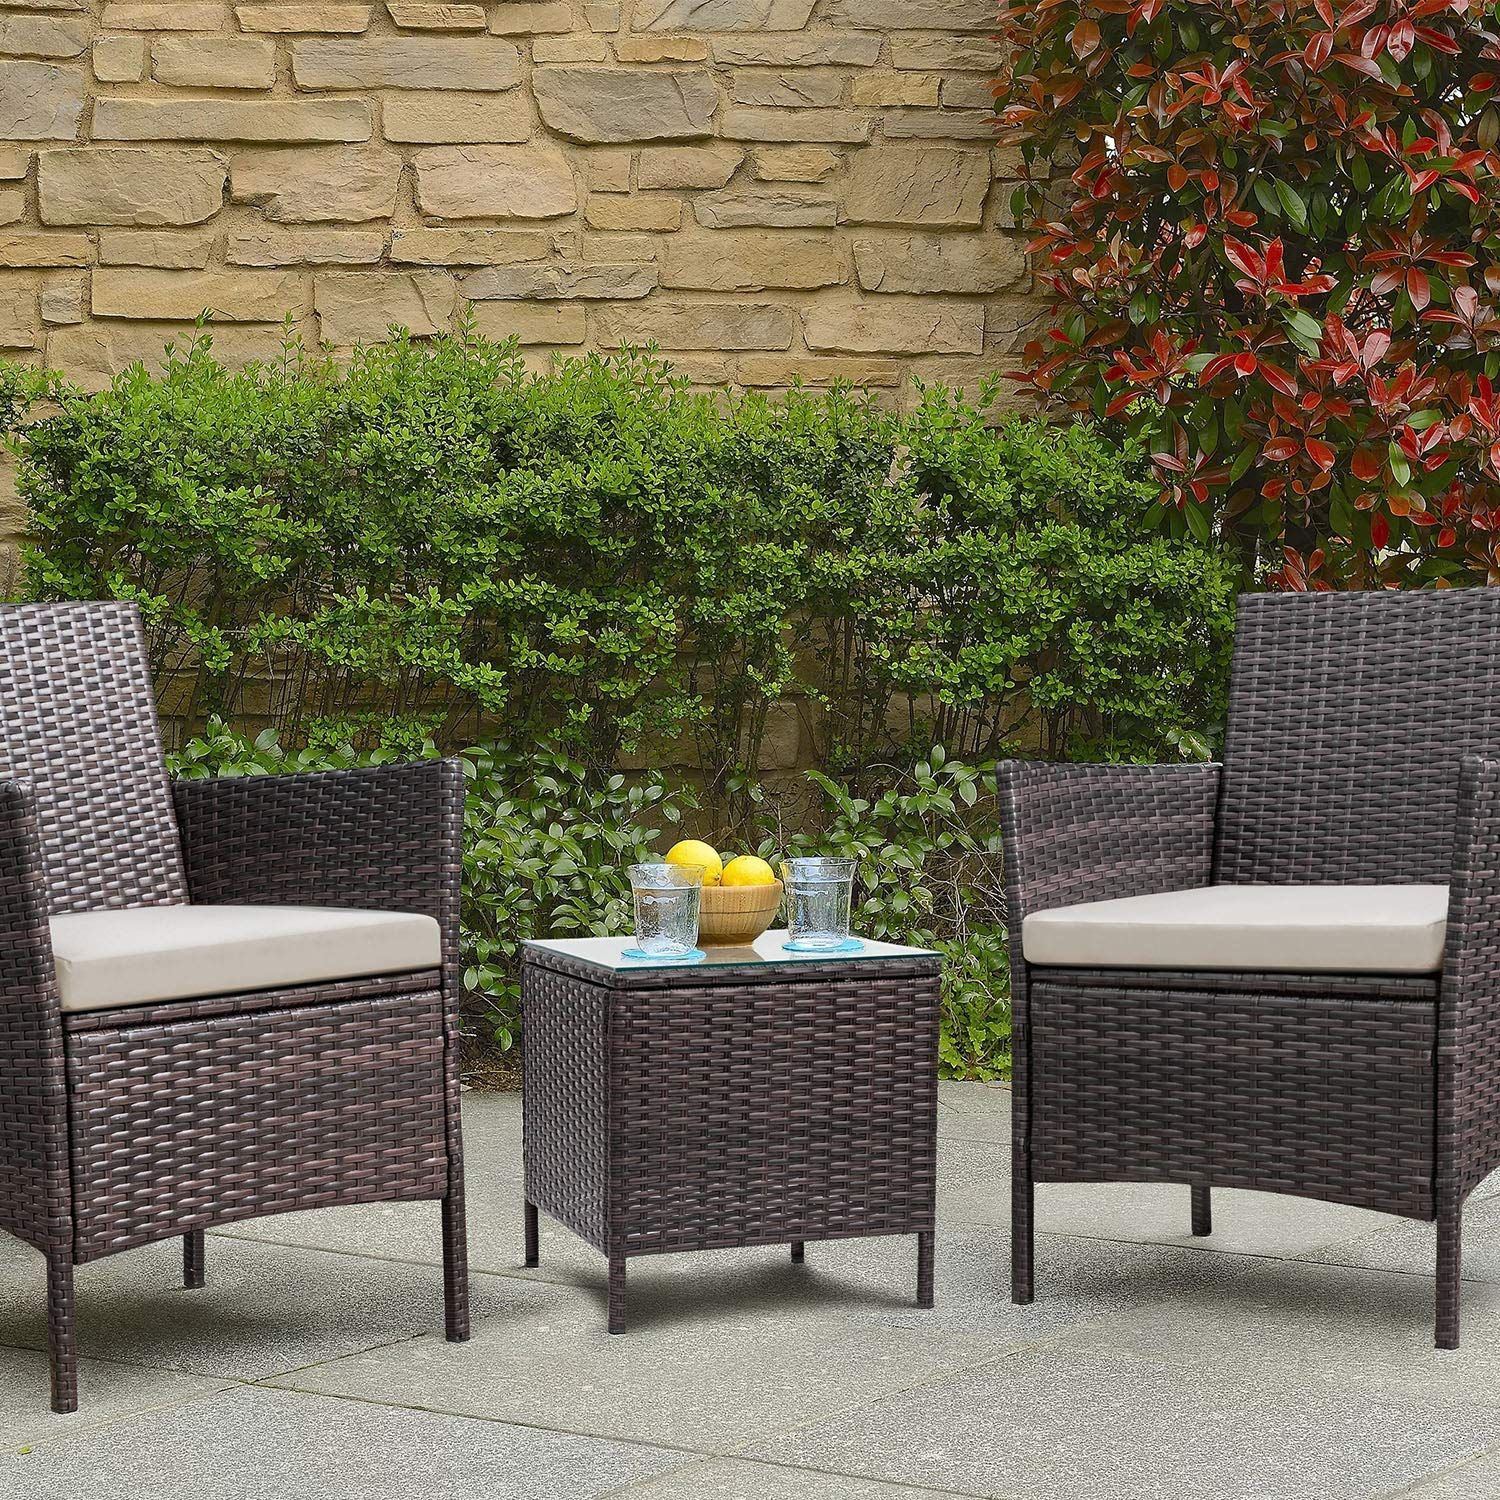 Patio Porch Furniture Set 3 Piece Pe Rattan Wicker Chairs Beige Cushion With Table Useful Tools Store Wicker Patio Furniture Set Porch Furniture Sets Garden Furniture Sets